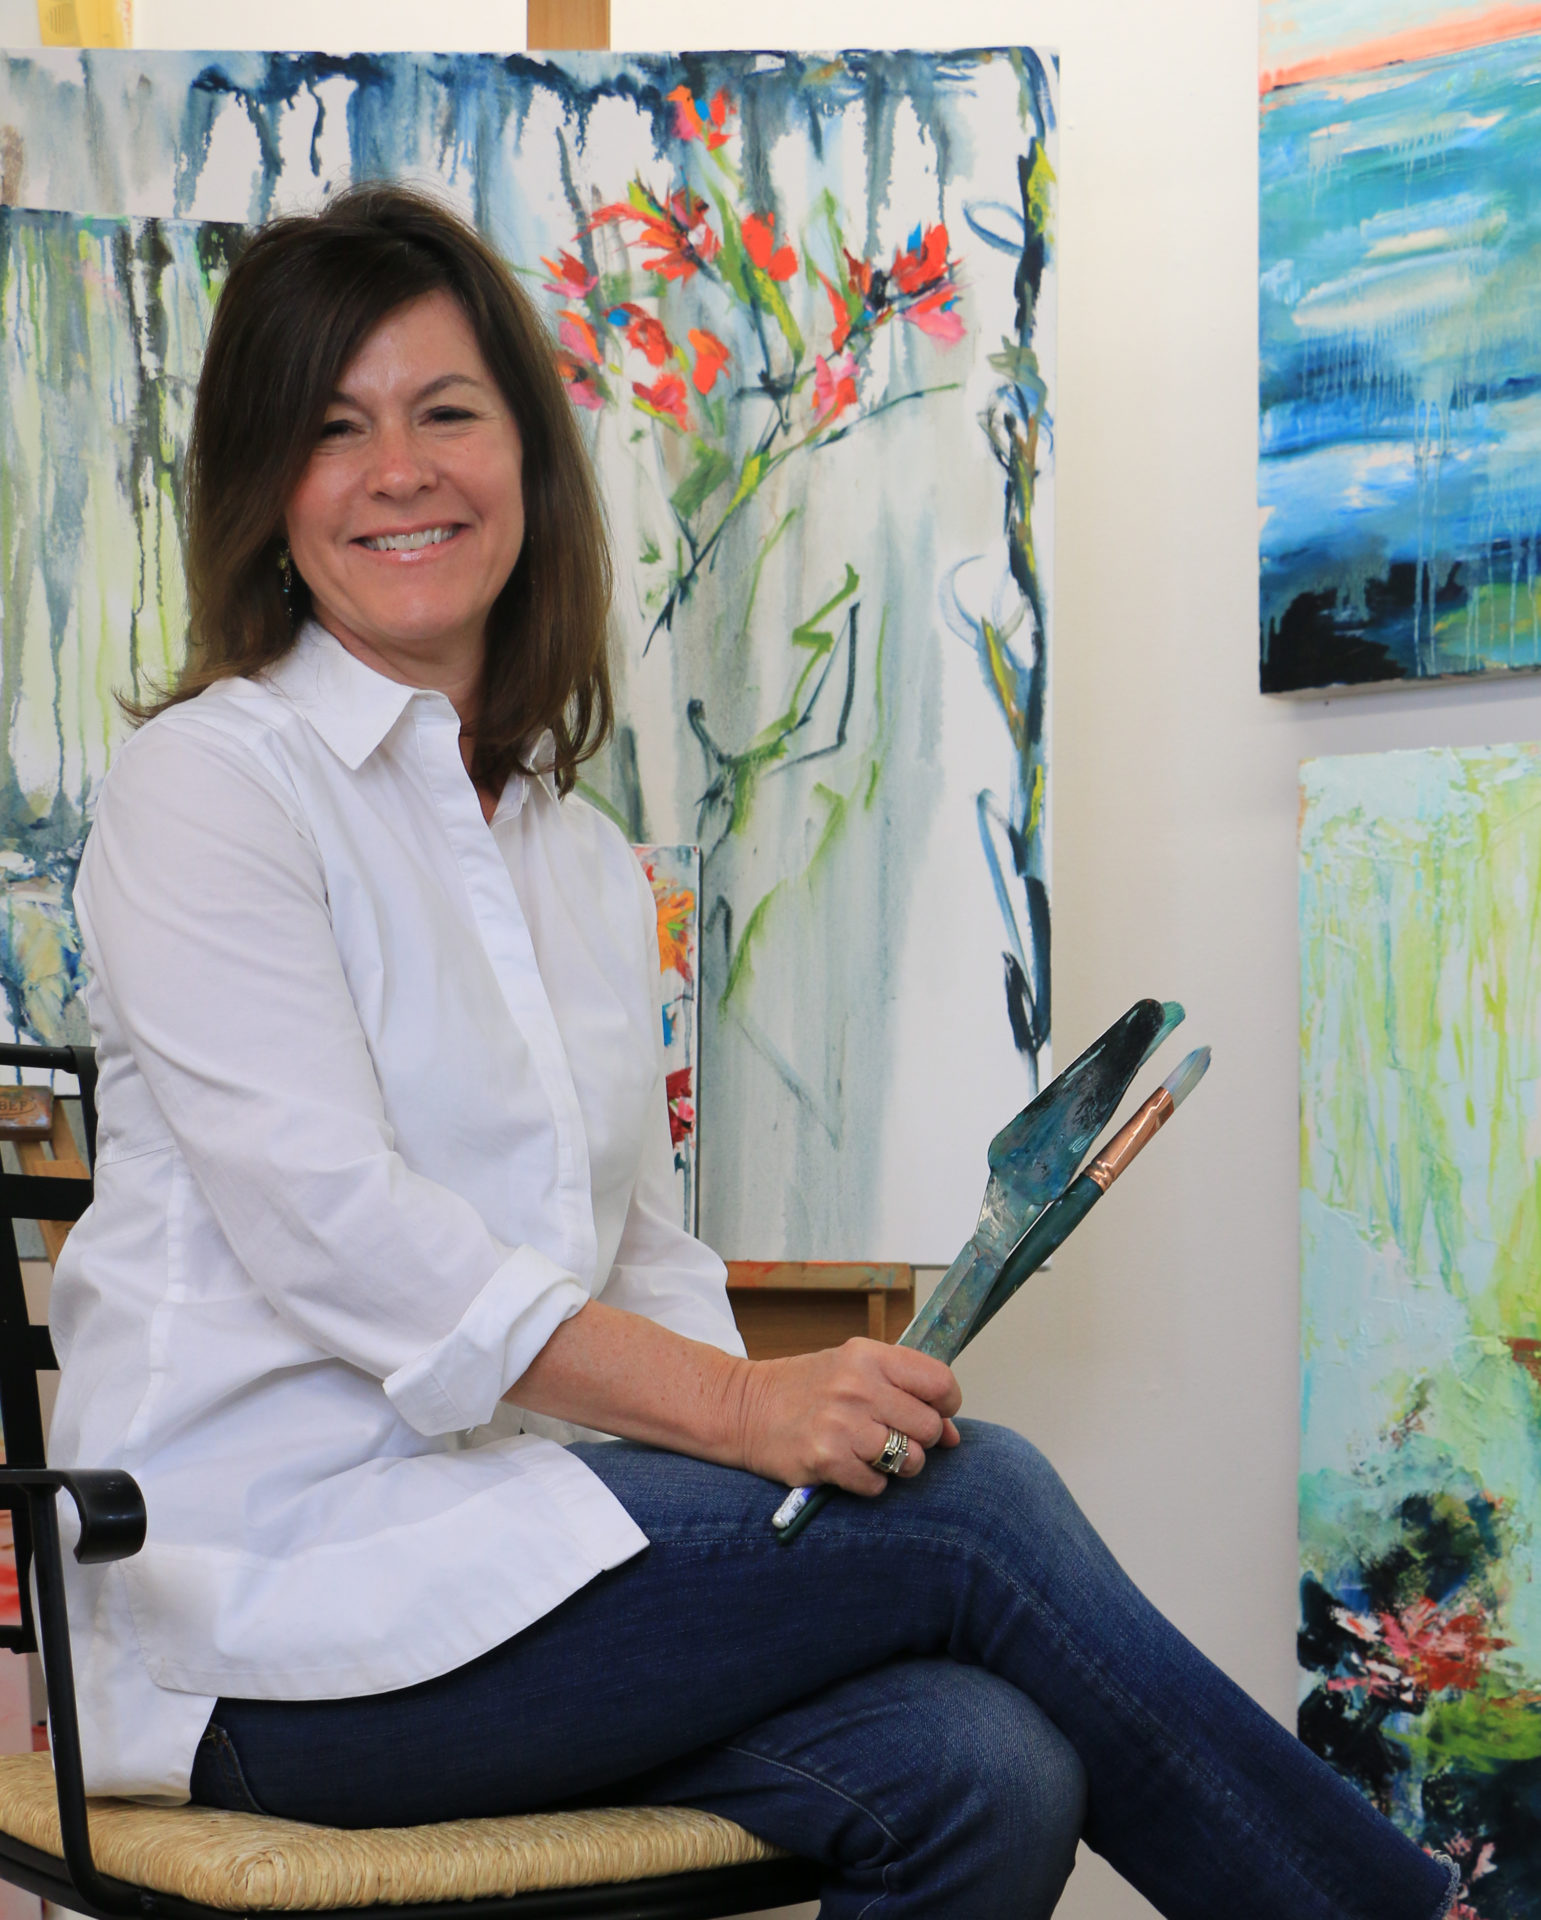 Betsy Powell loves art and  community in Greenville, SC - https://www.greenvillearts.com/artist/betsy-powell/                  https://coldwellbankercaine.com/meet-the-artist-betsy-powell/